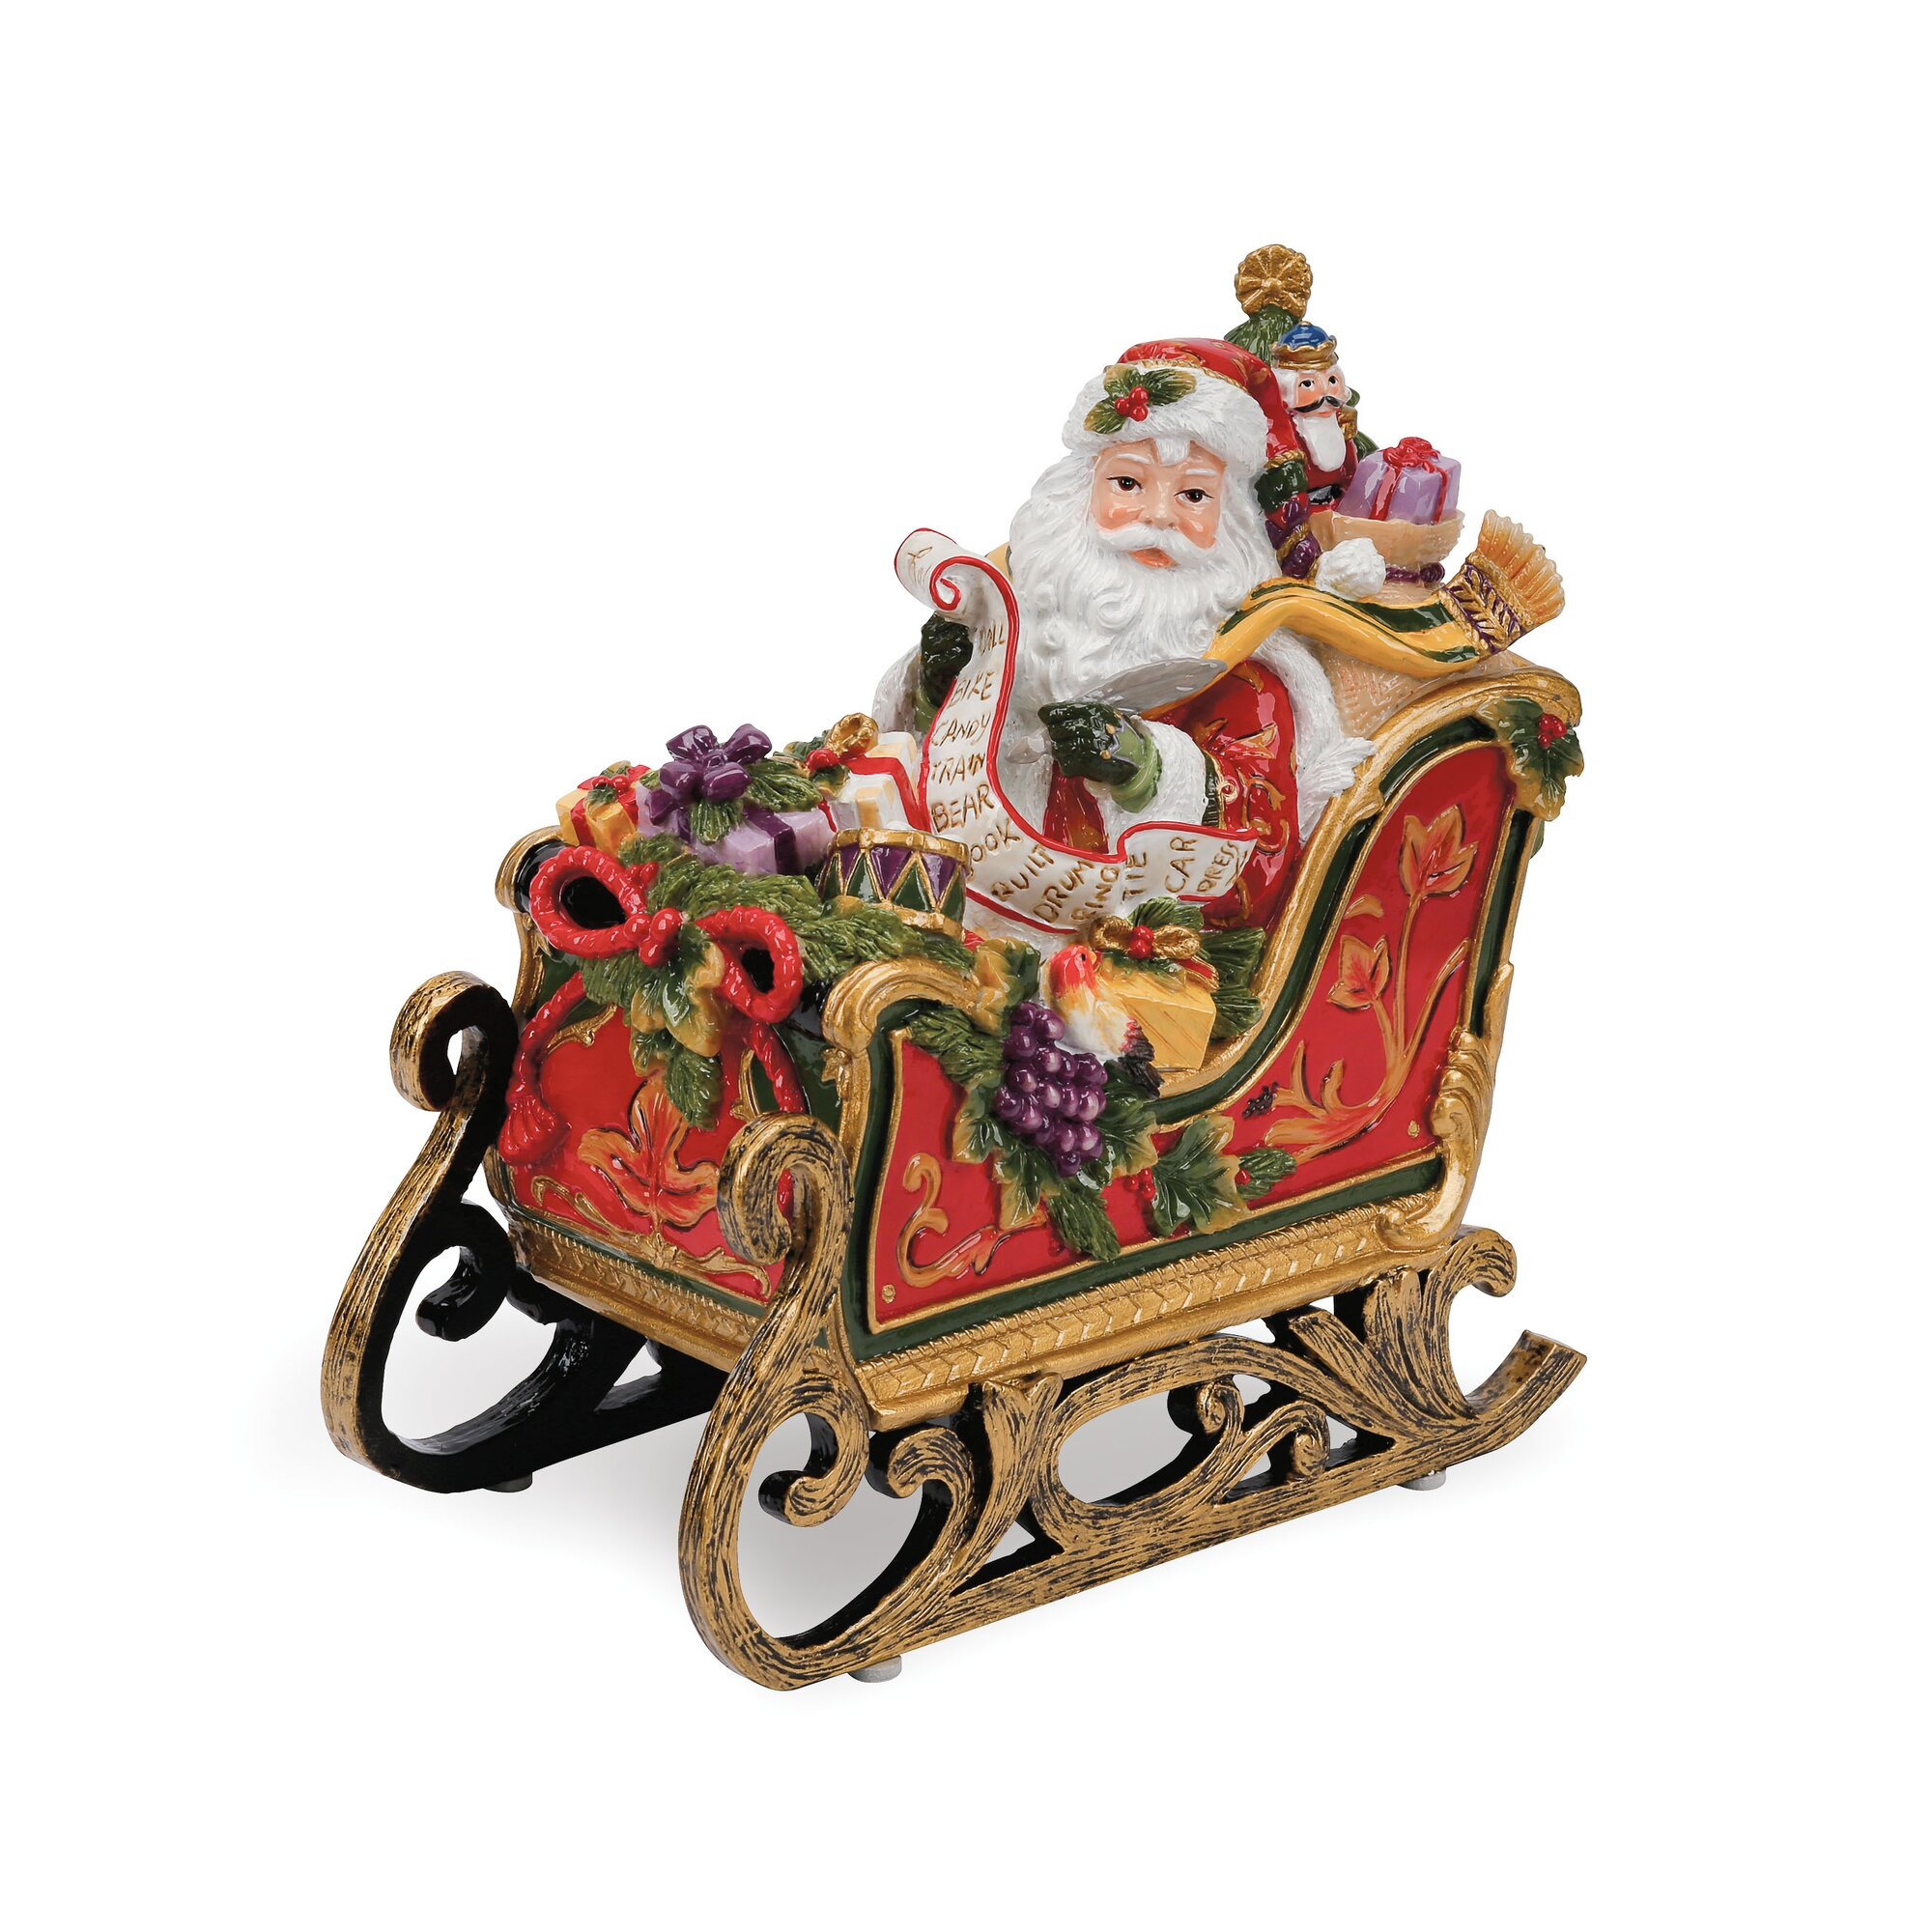 Santa sleigh ornament - Regal Holiday Santa In Sleigh Musical Figurine